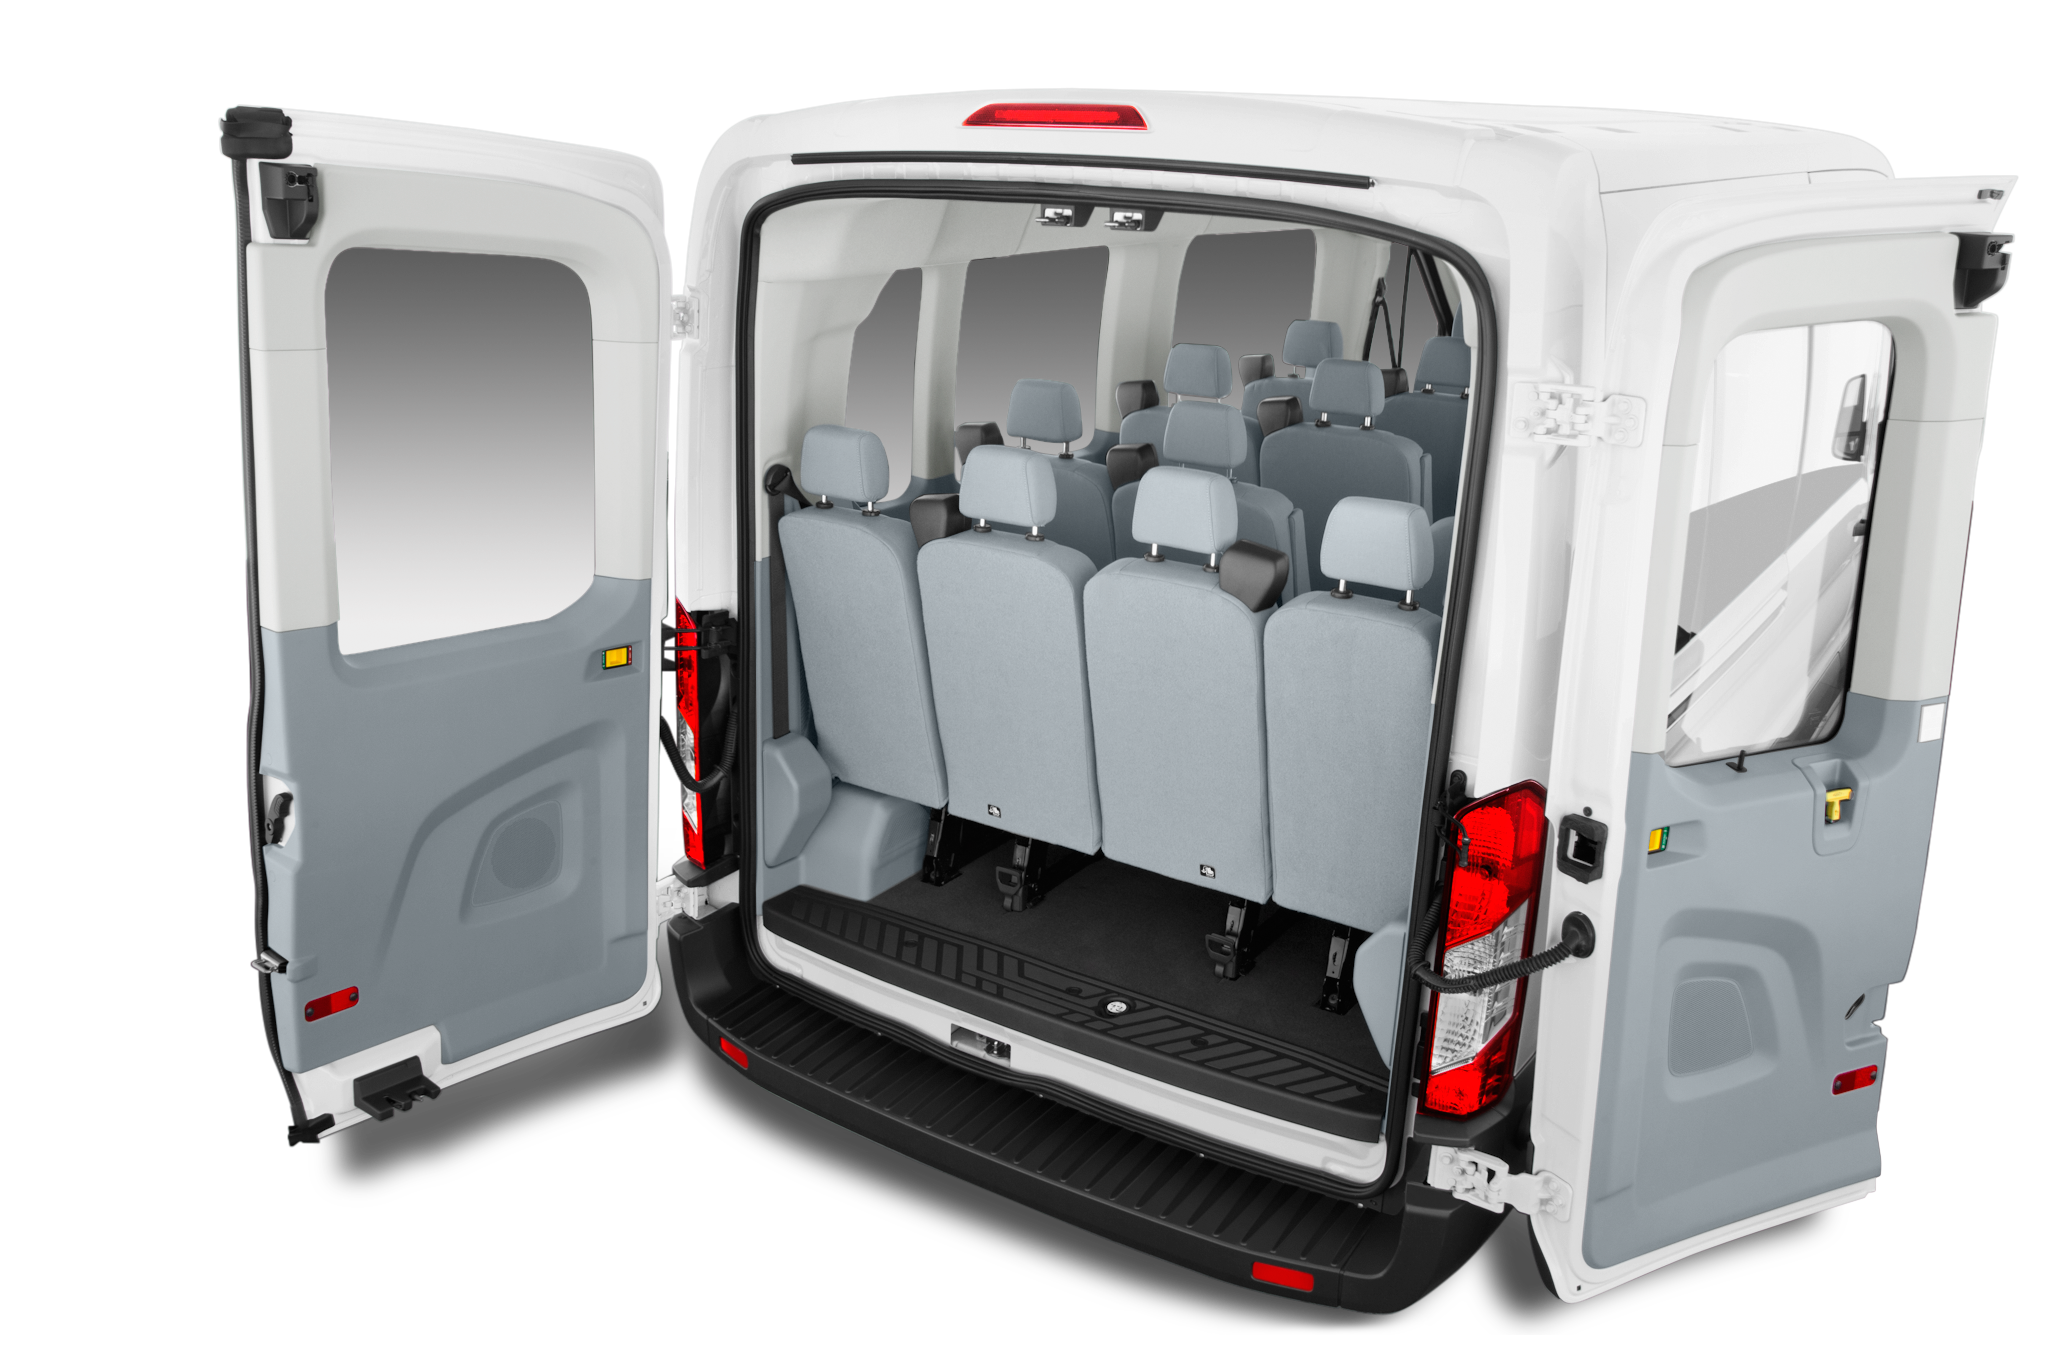 Minivan clipart 15 passenger van. Car trunk free on